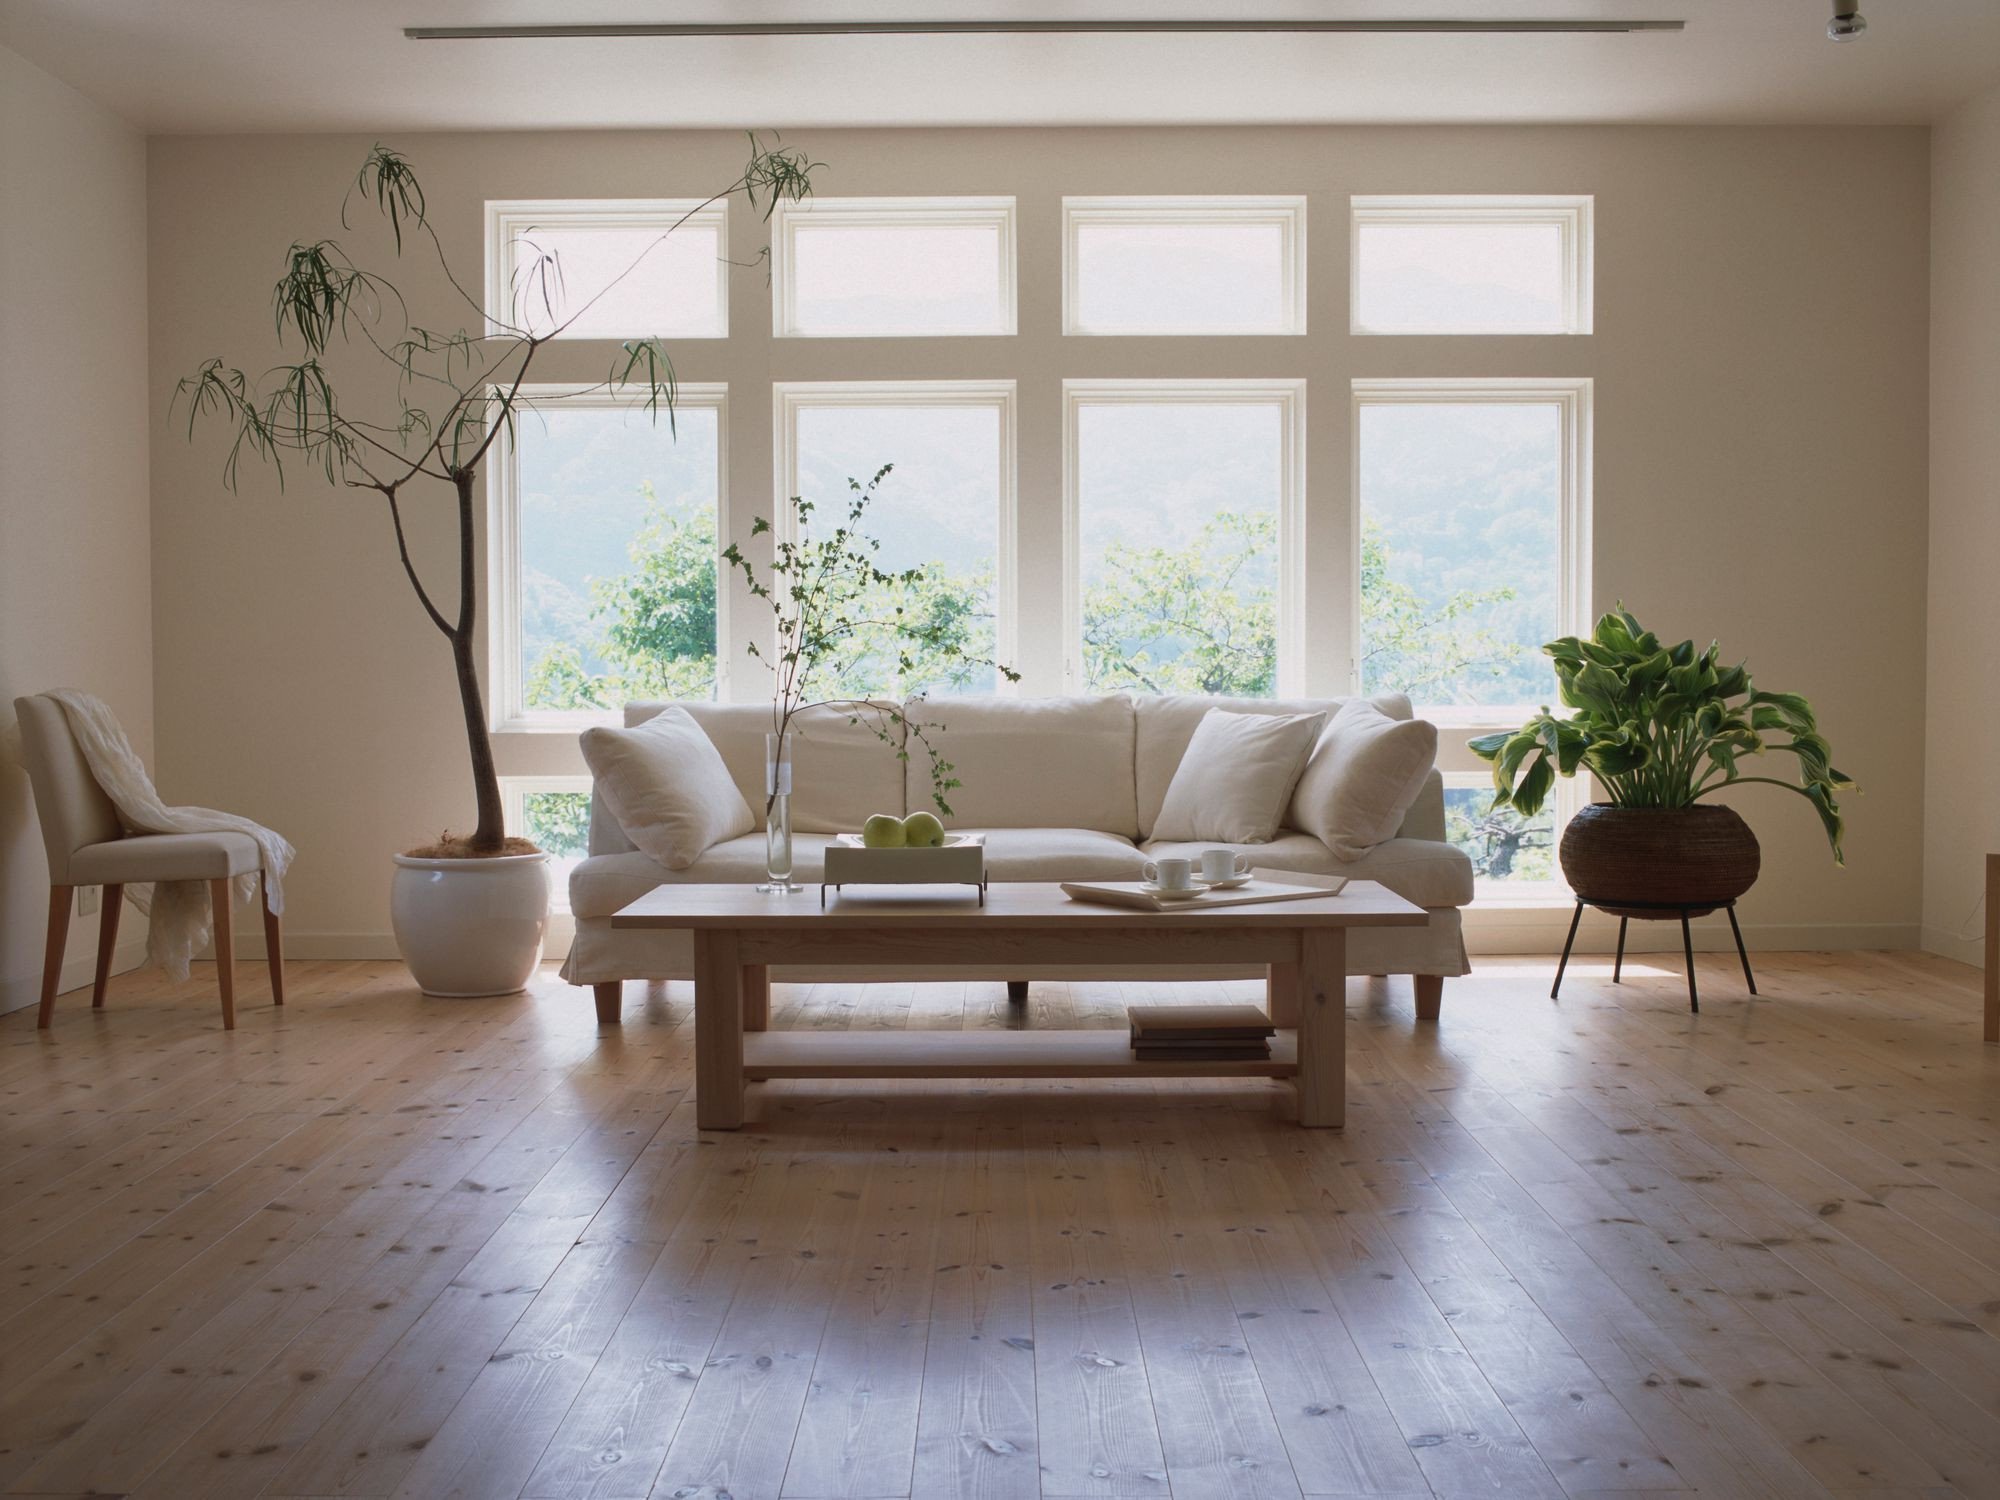 hardwood floor finish life expectancy of laminate flooring pros and cons throughout living room laminate floor gettyimages dexph070 001 58b5cc793df78cdcd8be2938